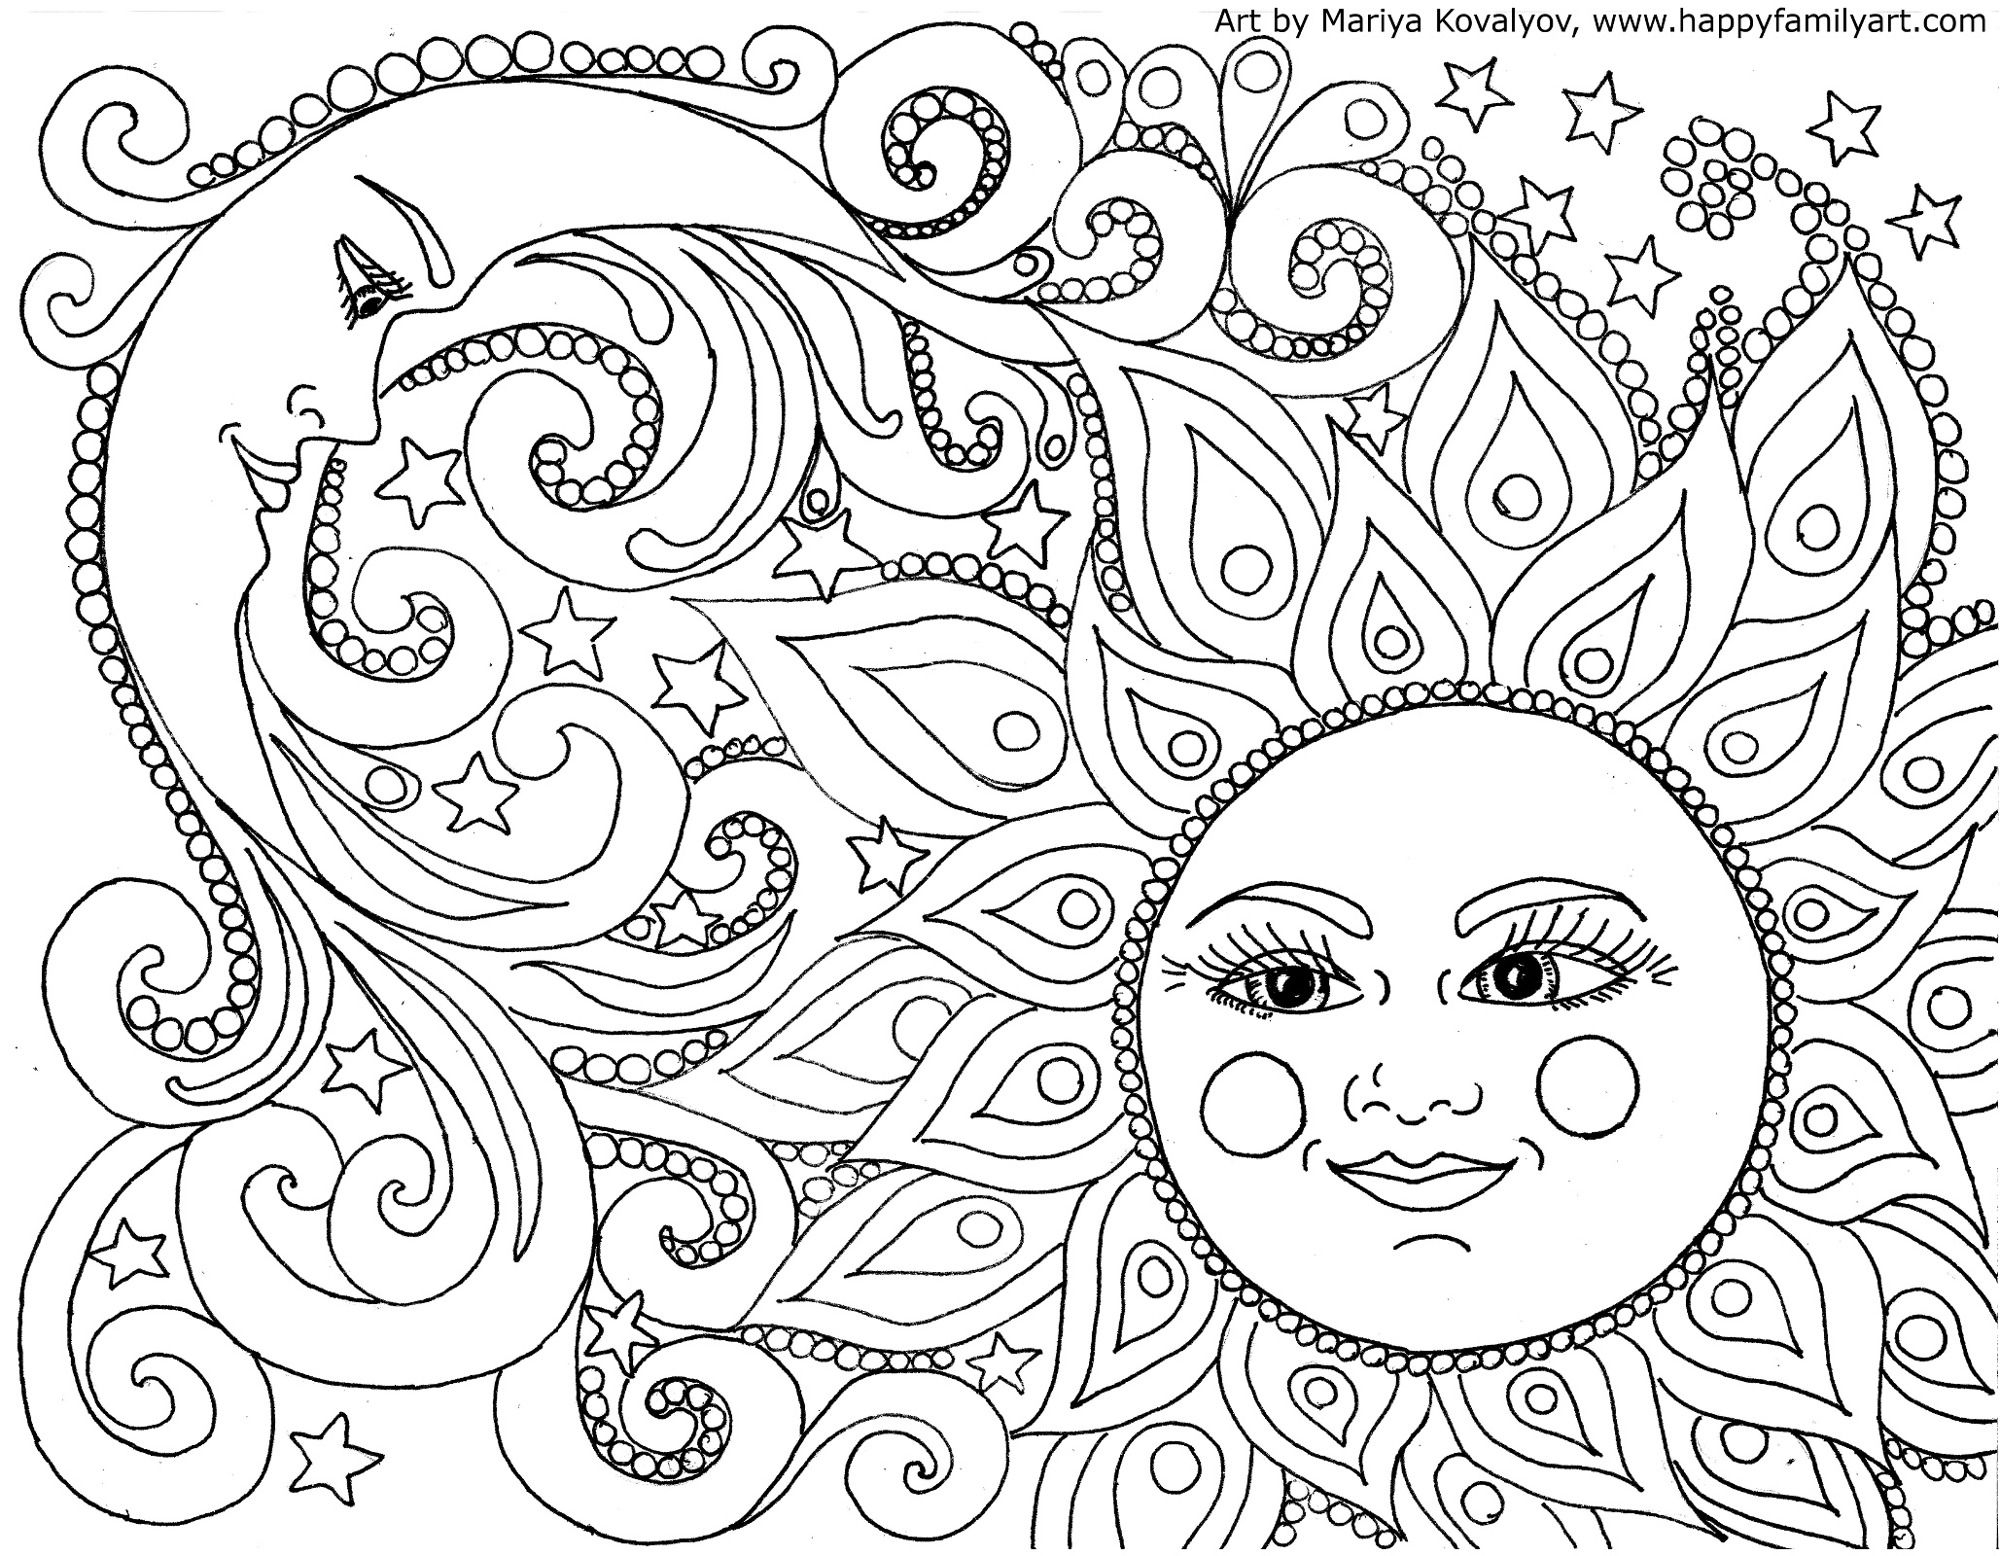 2000x1556 Cool I Made Many Great Fun And Original Coloring Pages Color Your